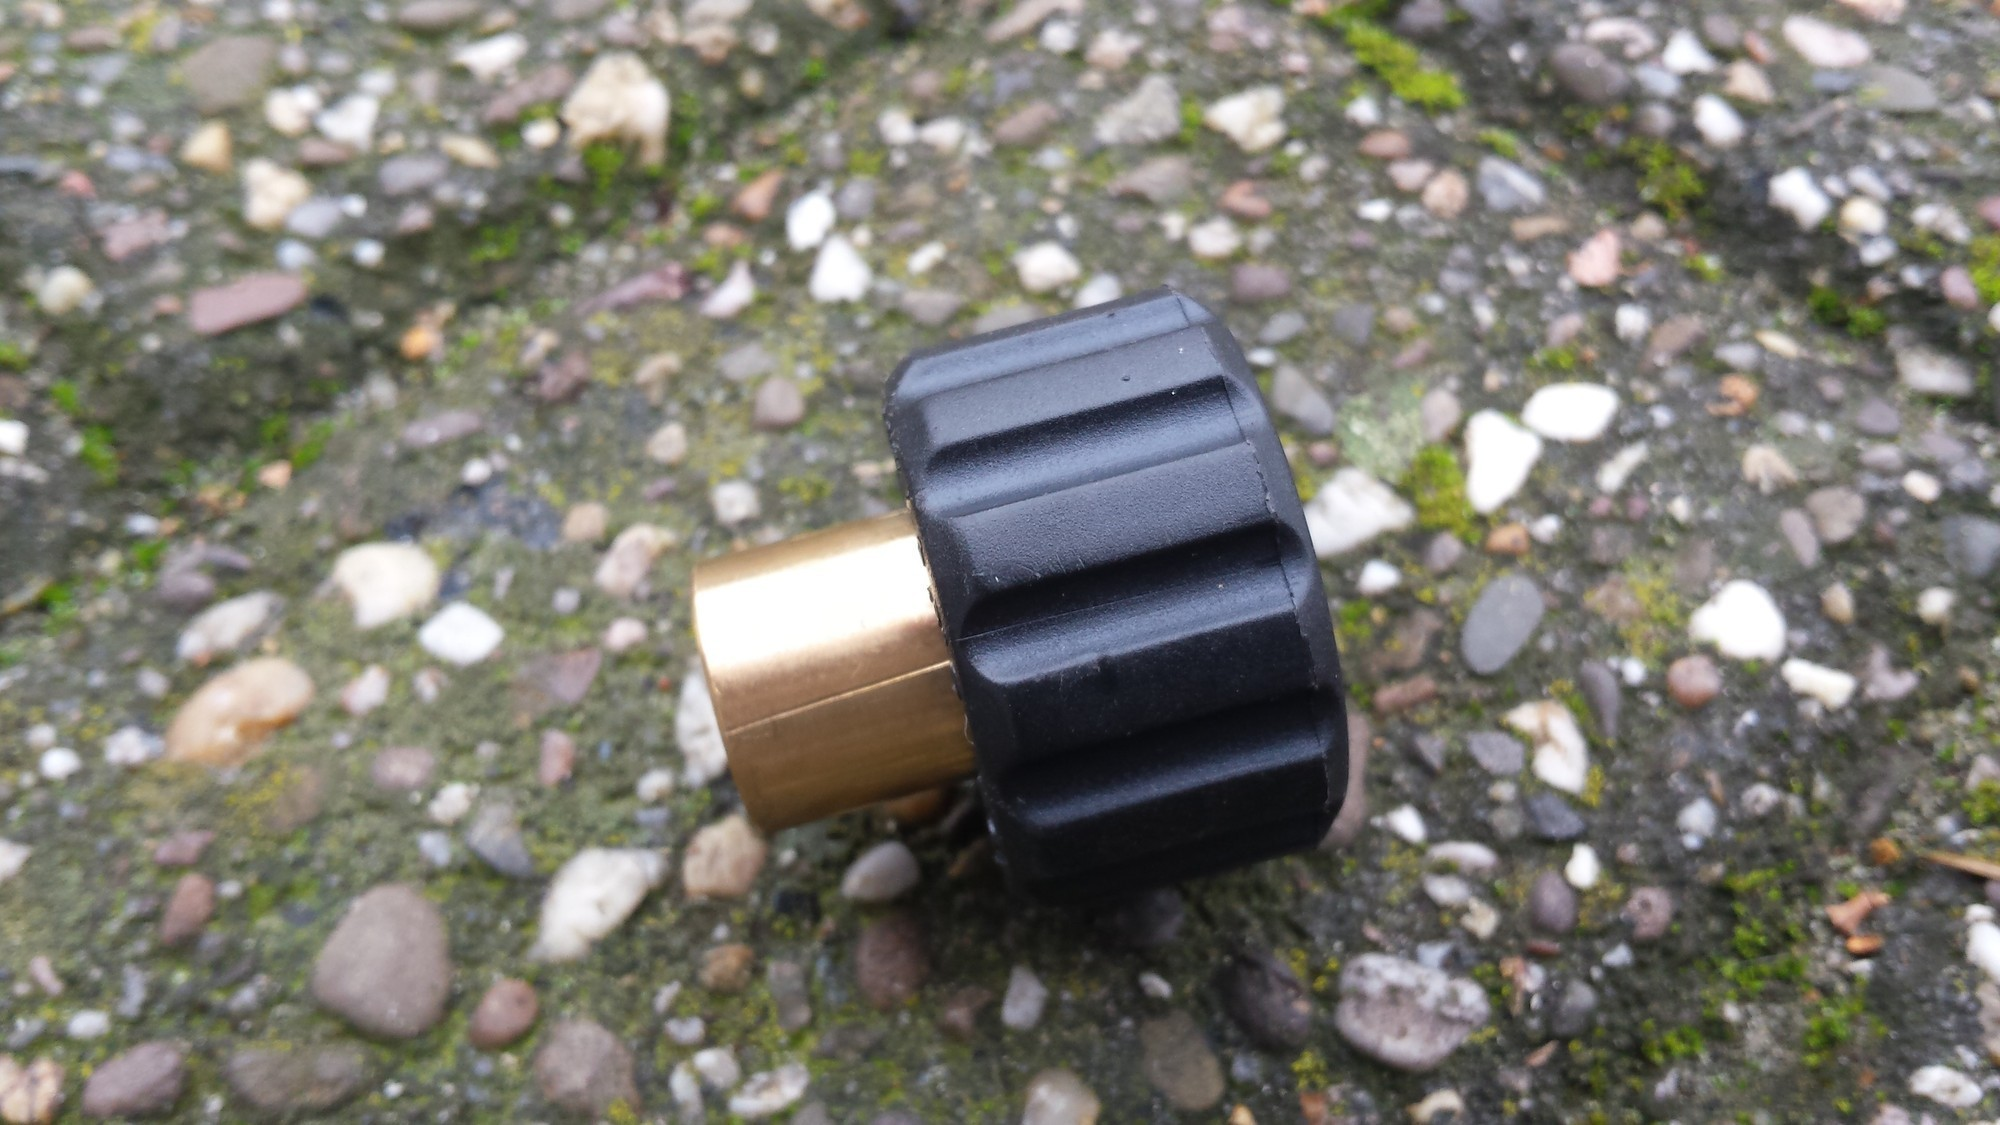 Eurom 155068 Schroefkoppeling - M22 x 1,5 (M)